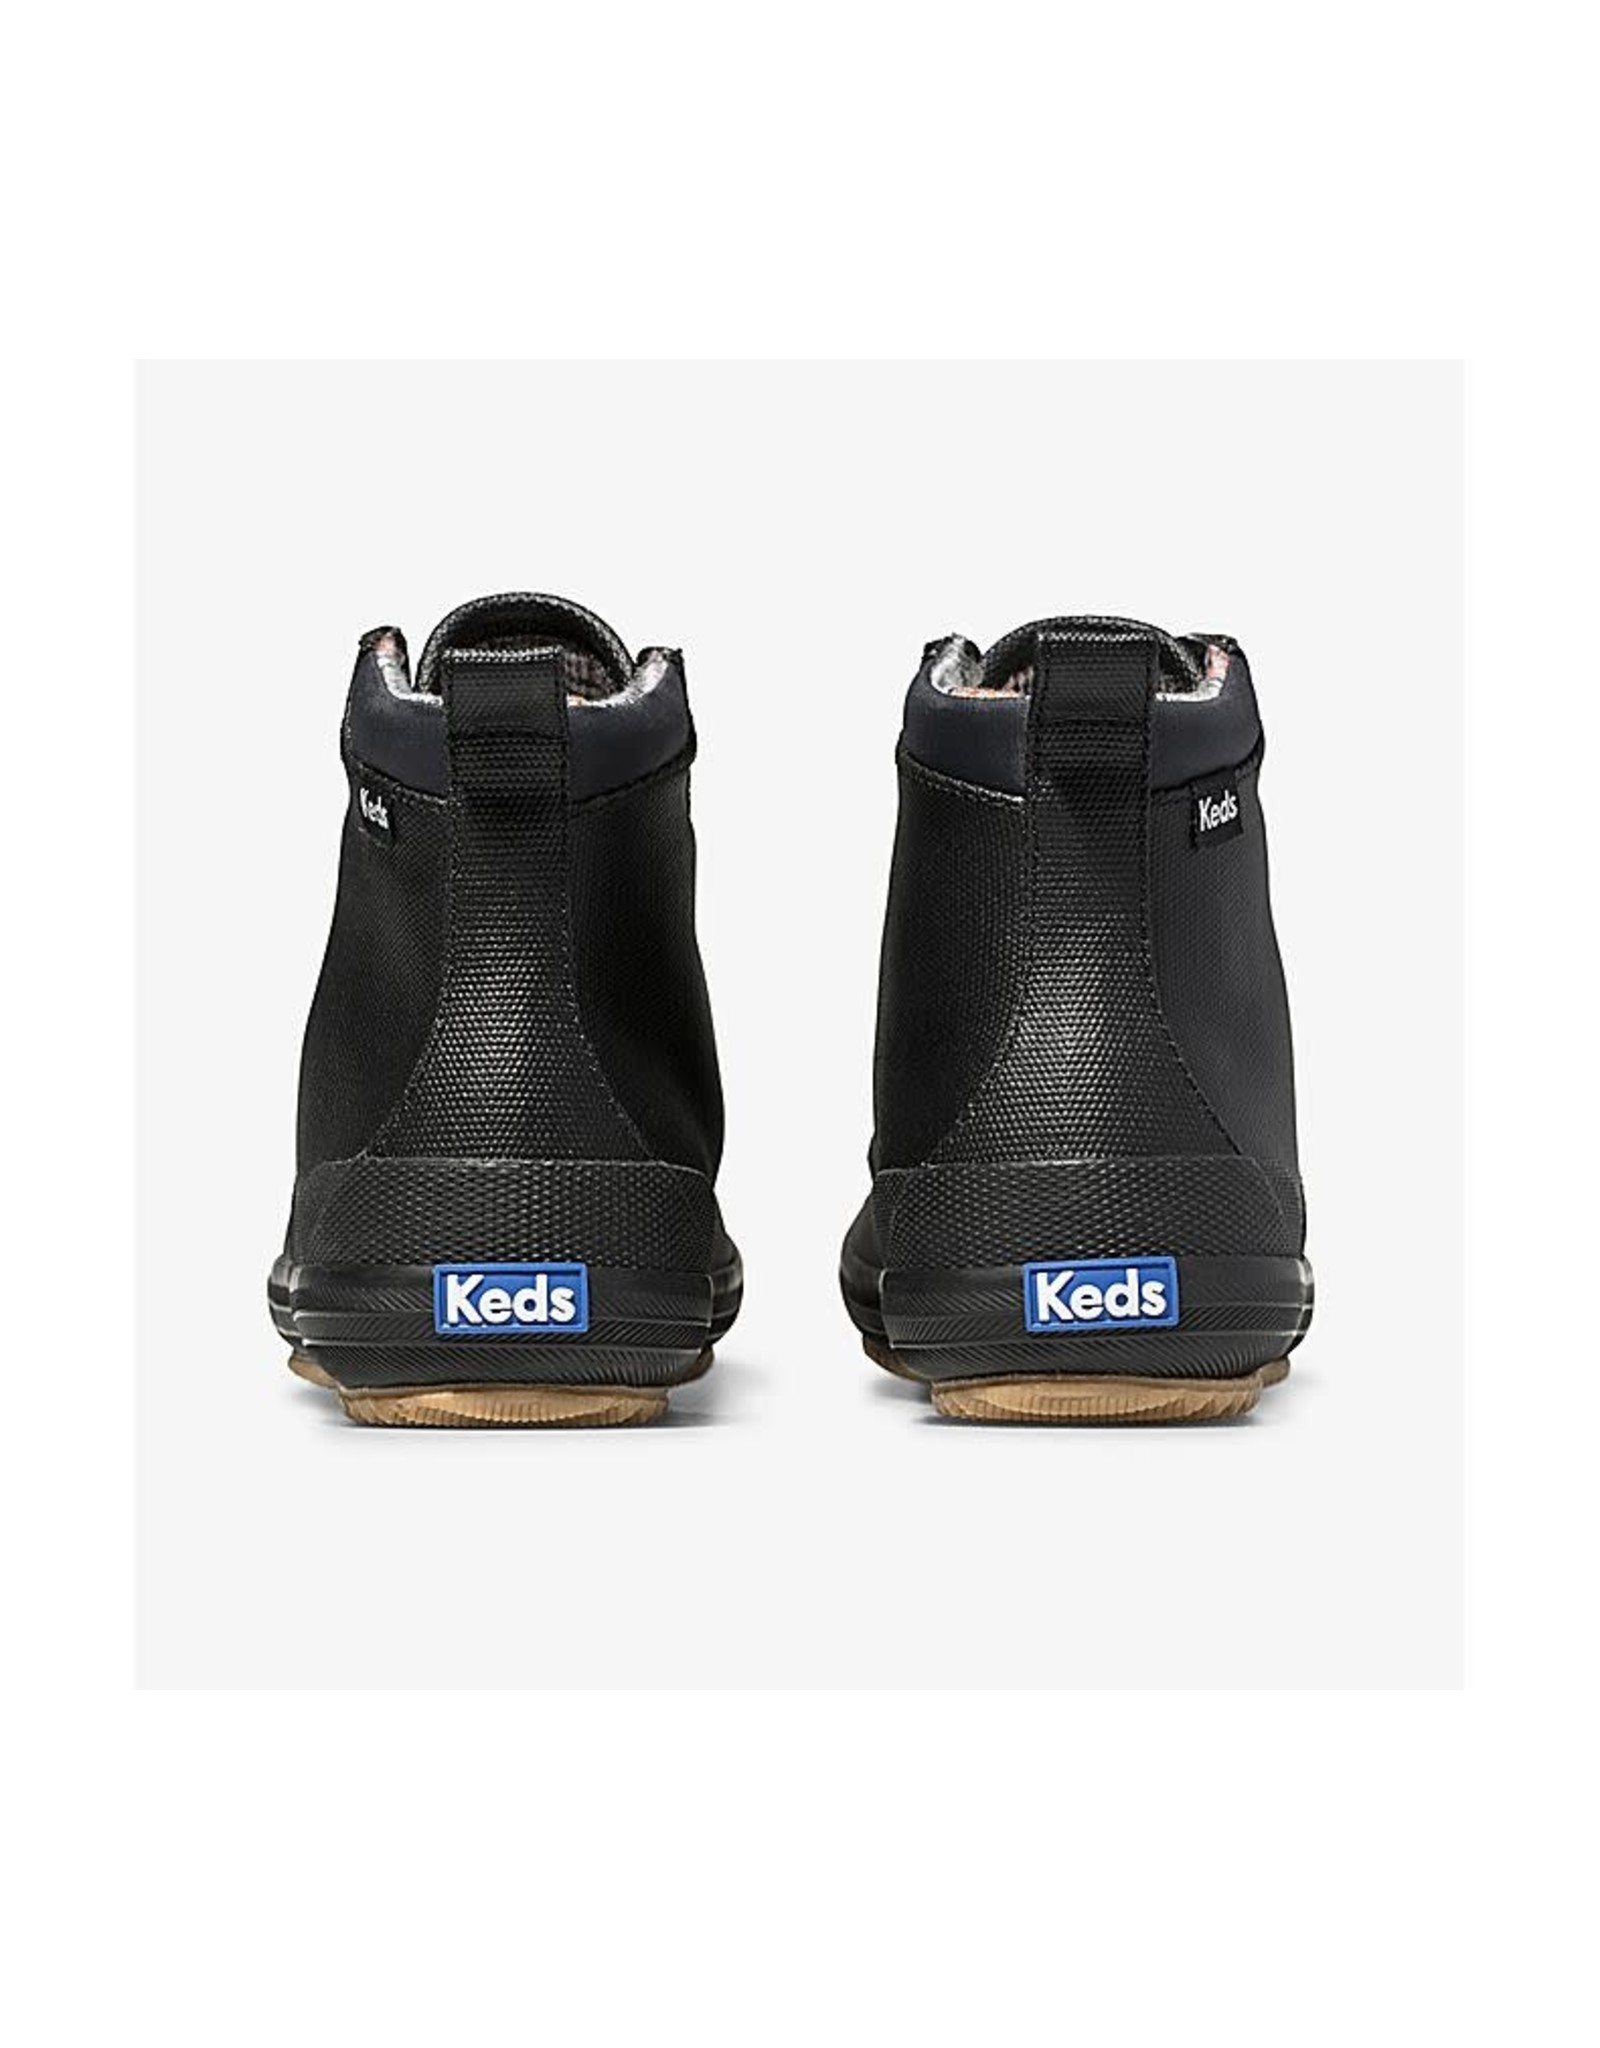 Keds - Waxed Canvas Laced Rubber Sole Boot